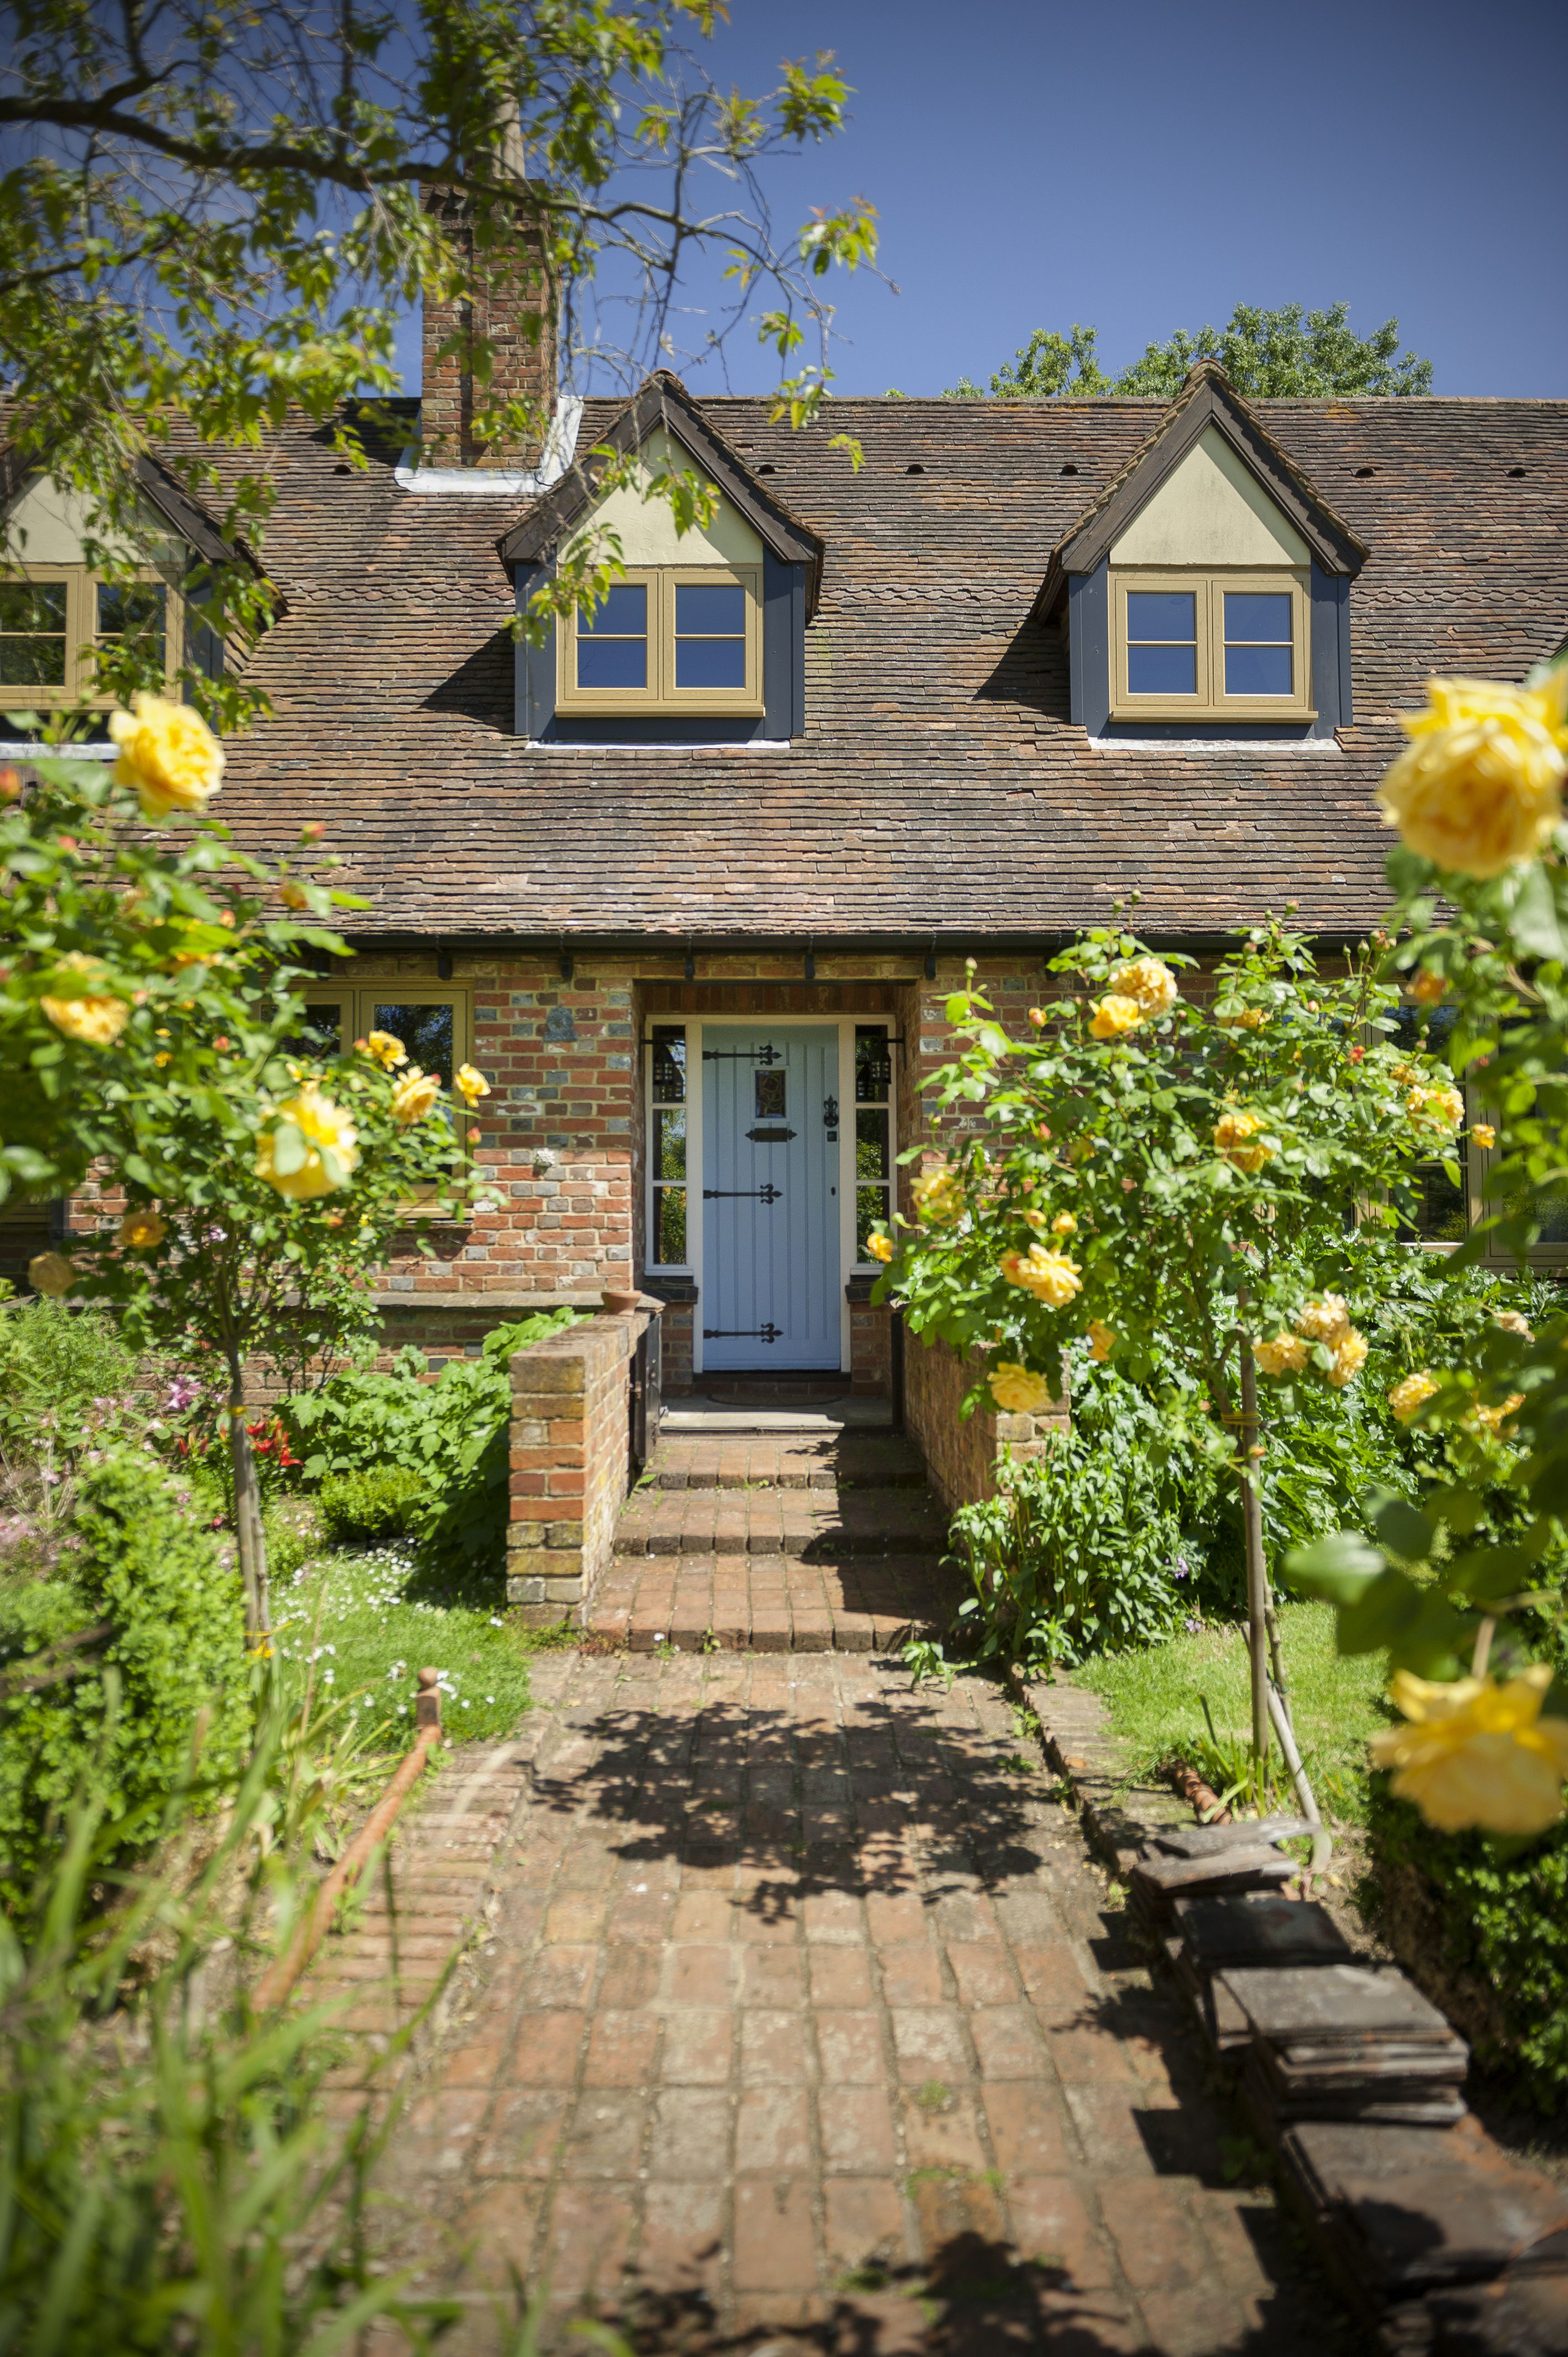 Residence 9 Windows in this beautiful countryside